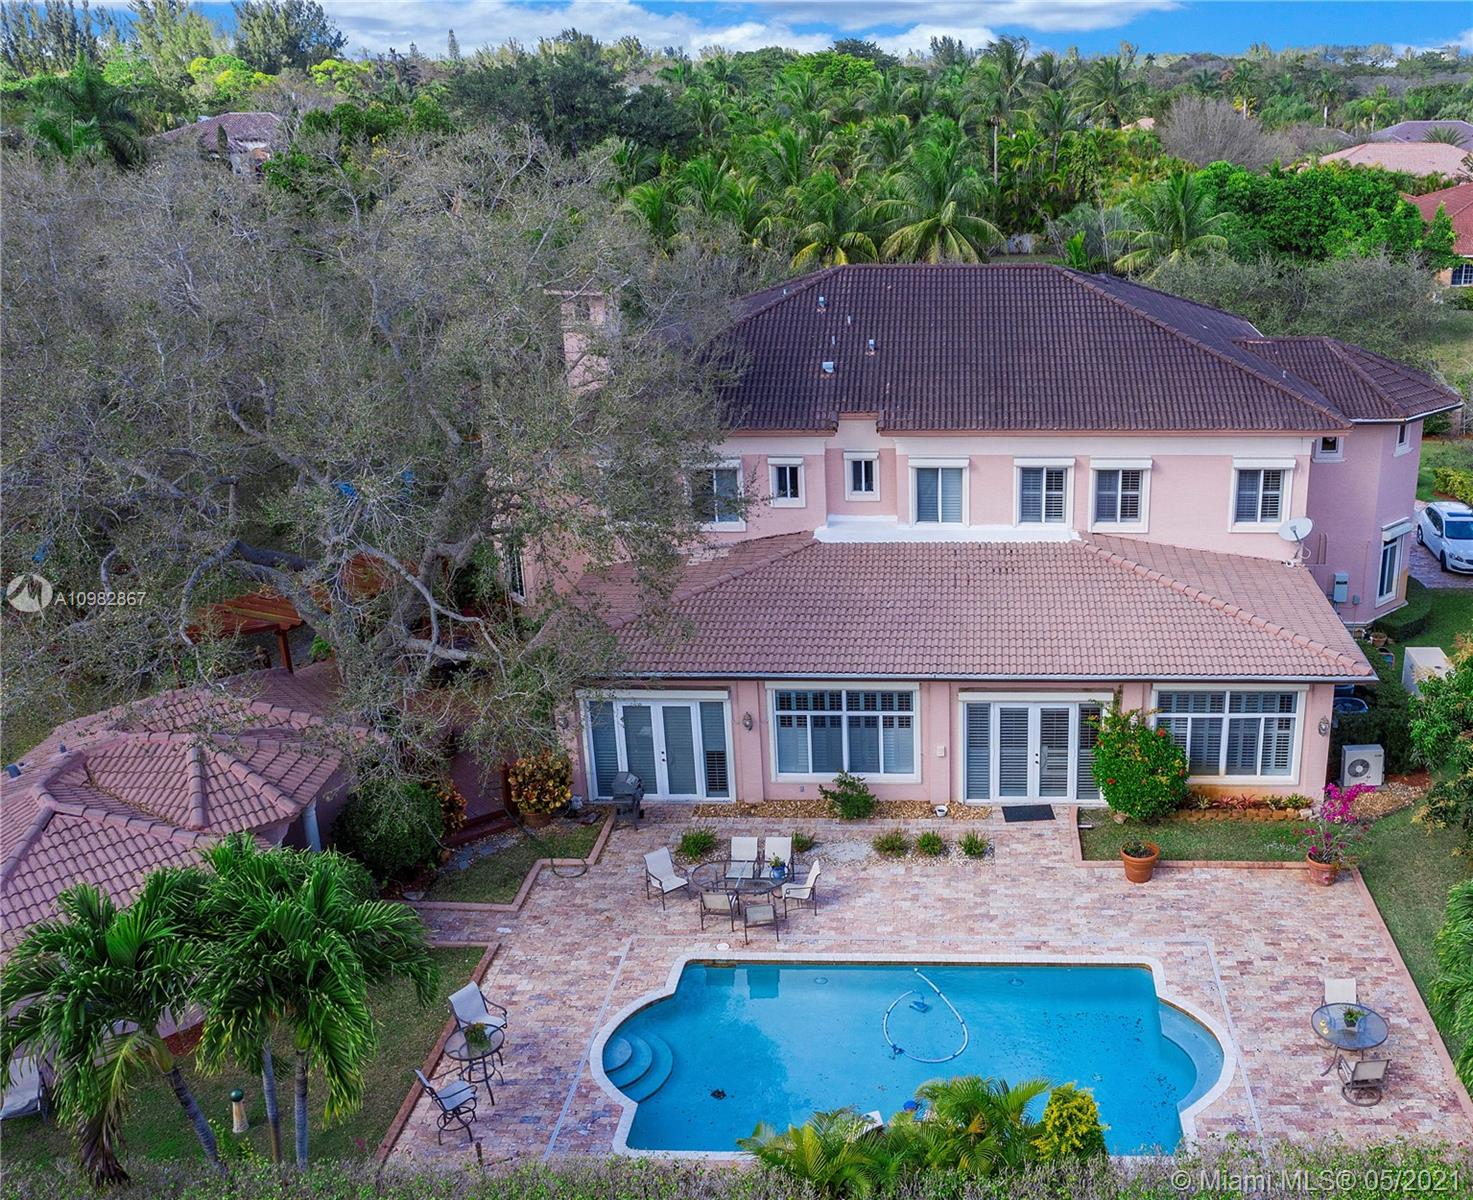 An Italianate Estate nestled on an oversized corner lot with lush landscape, Pool, and Guest House. Enter the Main House through a double height Foyer with gracious open staircase. First Floor contains a formal Living Room, polygonal Library, octagonal Dining Room, Family Room with Bar, gourmet Kitchen with eat-in Breakfast area, large Florida Room, Laundry Room, Bedroom, and two-car Garage. Second Floor encompasses a giant Master Suite, three large Bedrooms with in-situ Bathrooms and walk-in Closets, a central Hall/Gallery, and Loft/Media Room. No expense was spared in the creation of this home with plenty of room for entertaining and family living. Abundant natural daylight, luxurious finishes, stone flooring, ceiling coffers, and detailed mouldings characterize this unique residence.